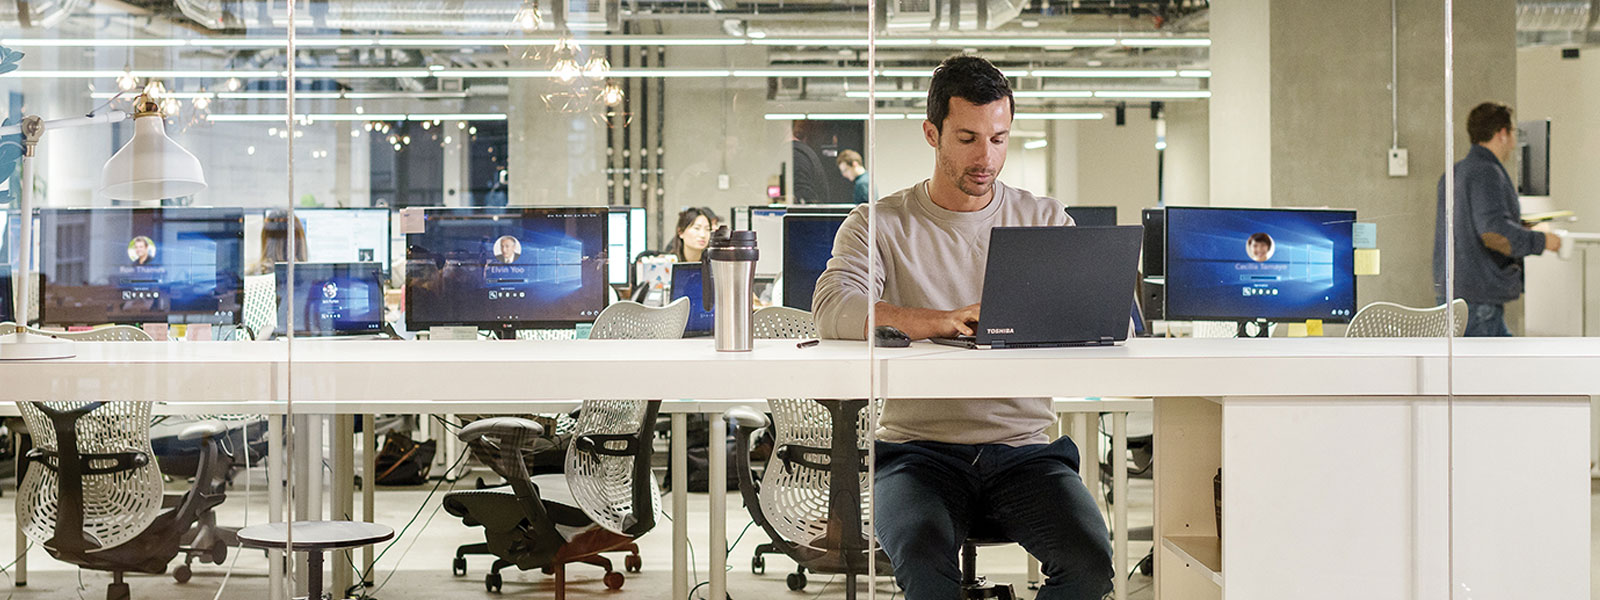 Man using laptop in open office space